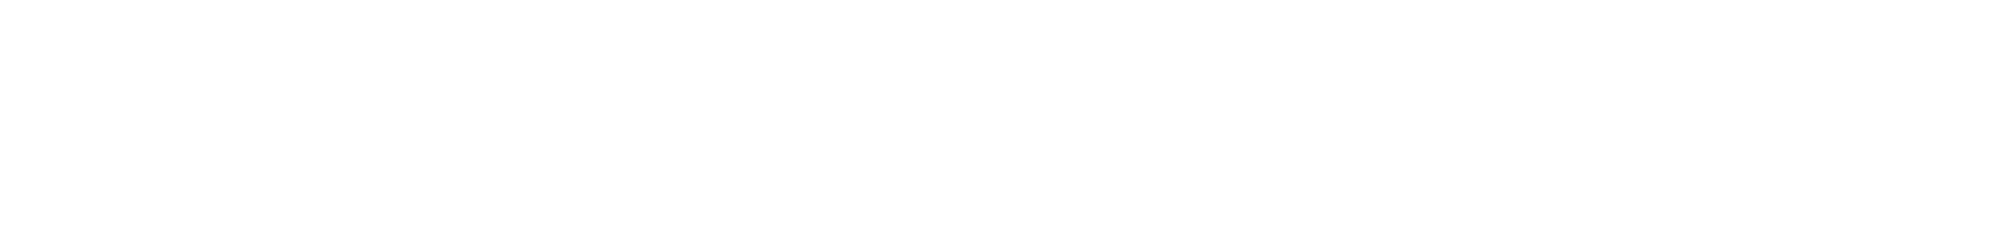 M-logo-footer.png